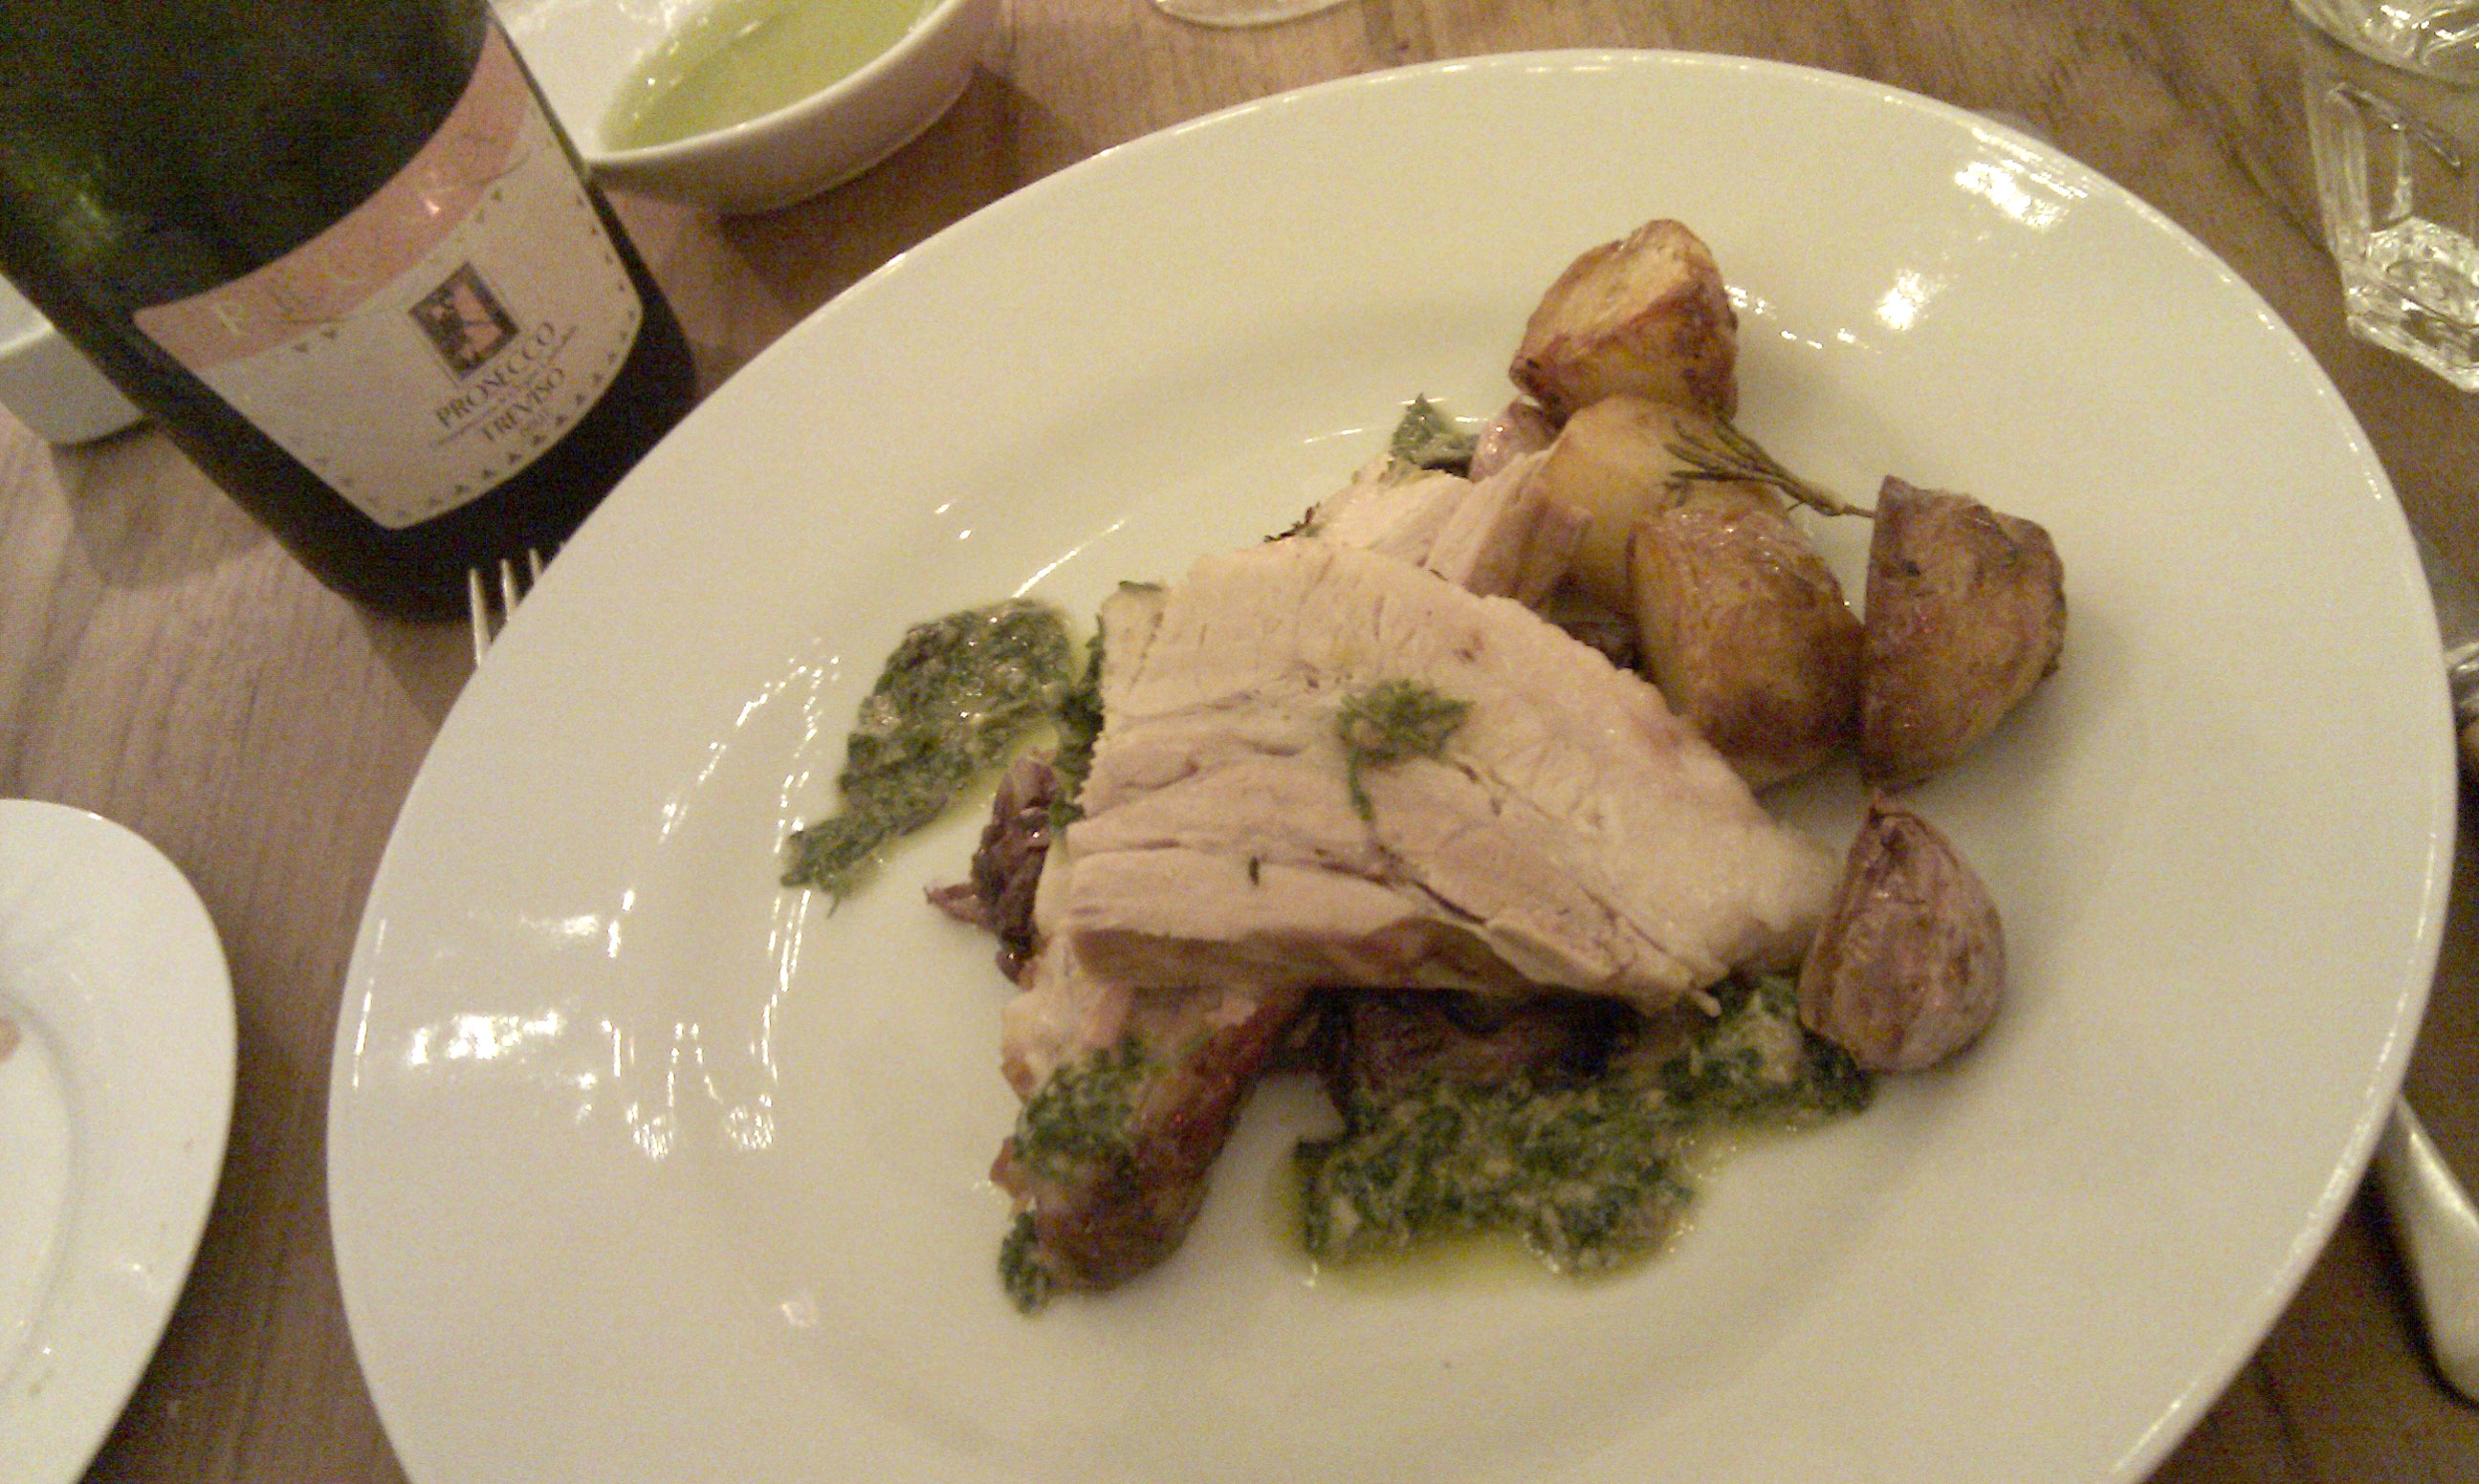 pork belly and Prosecco Riccardo at Secret Larder